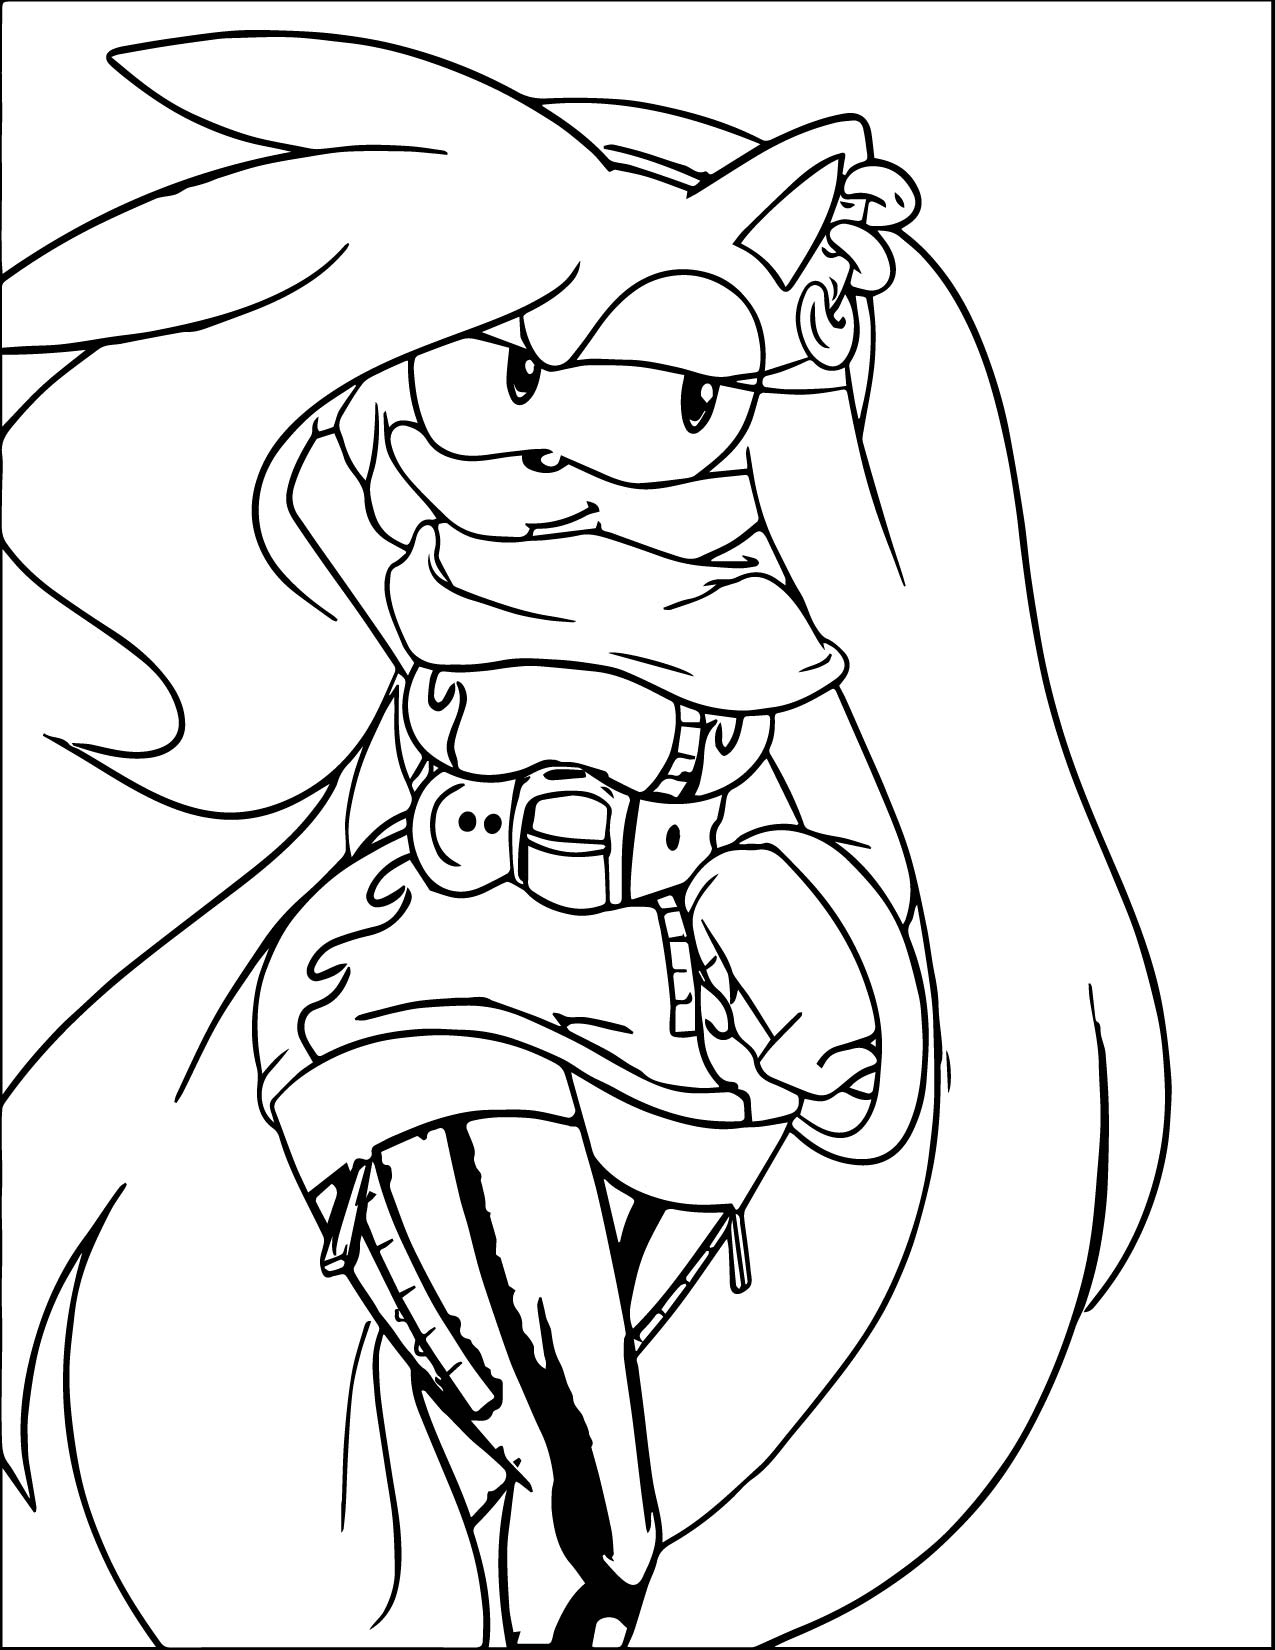 Amy Rose Long Hair Coloring Page | Wecoloringpage.com